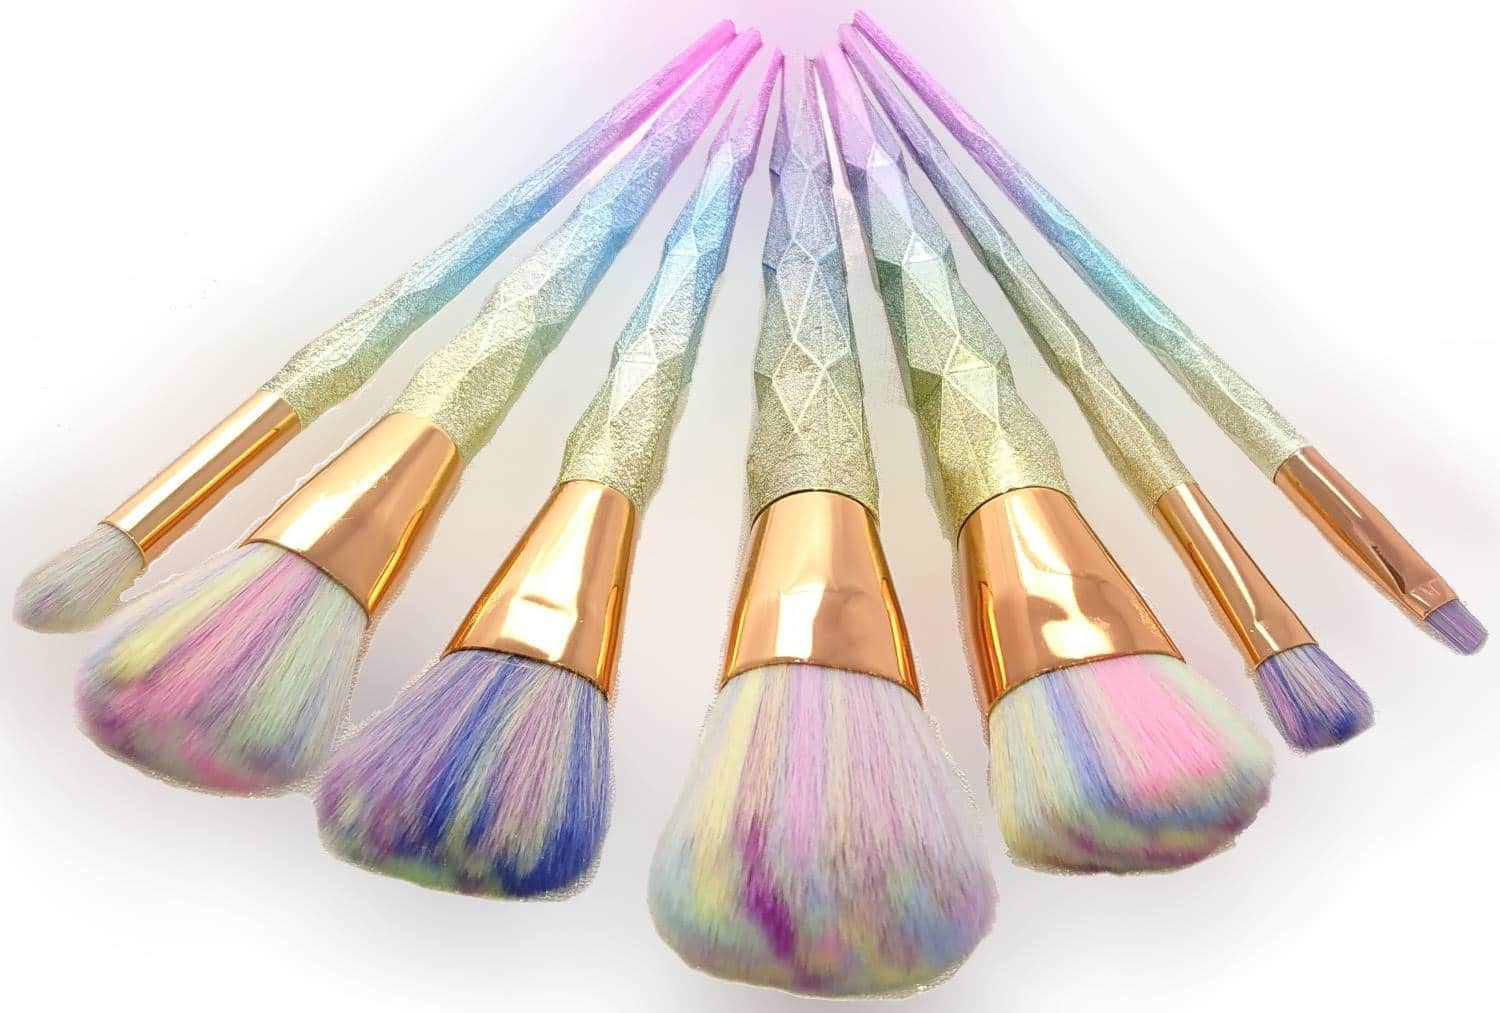 Diamond Glitter Makeup Brushes Hair Amp Beauty Products